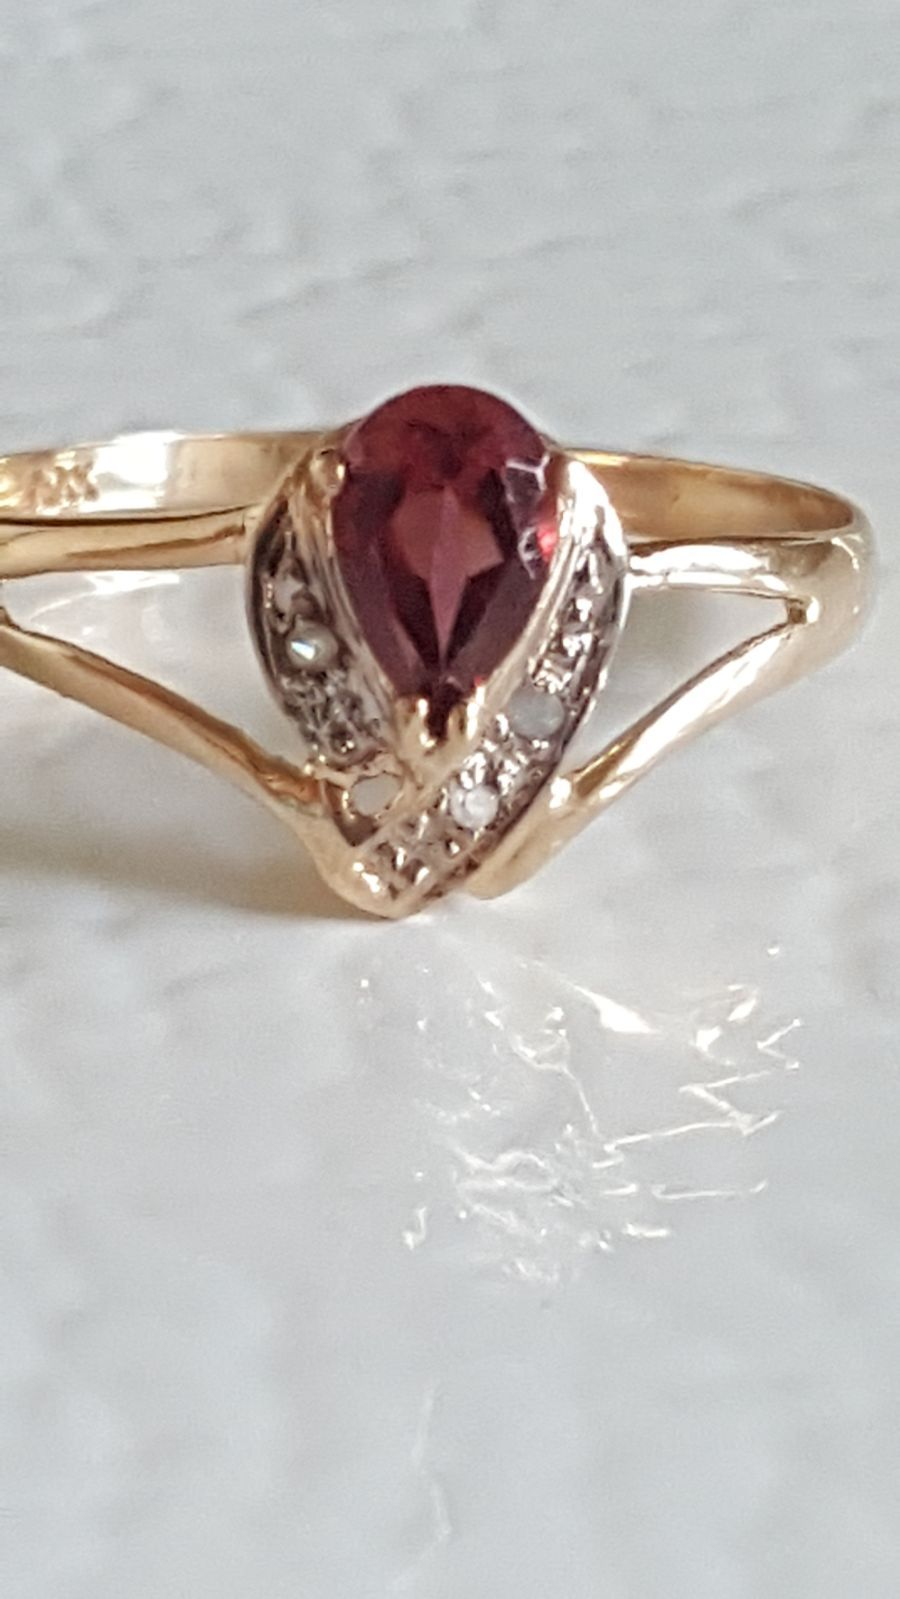 Price Is Firm Solid 10kt Yellow Gold Garnet Diamond Ring Size 7 5 Not Plated Or Filled Genuine Garnet Half A Carat And 3 Natural Diamo Natural Diamonds Bling Rings